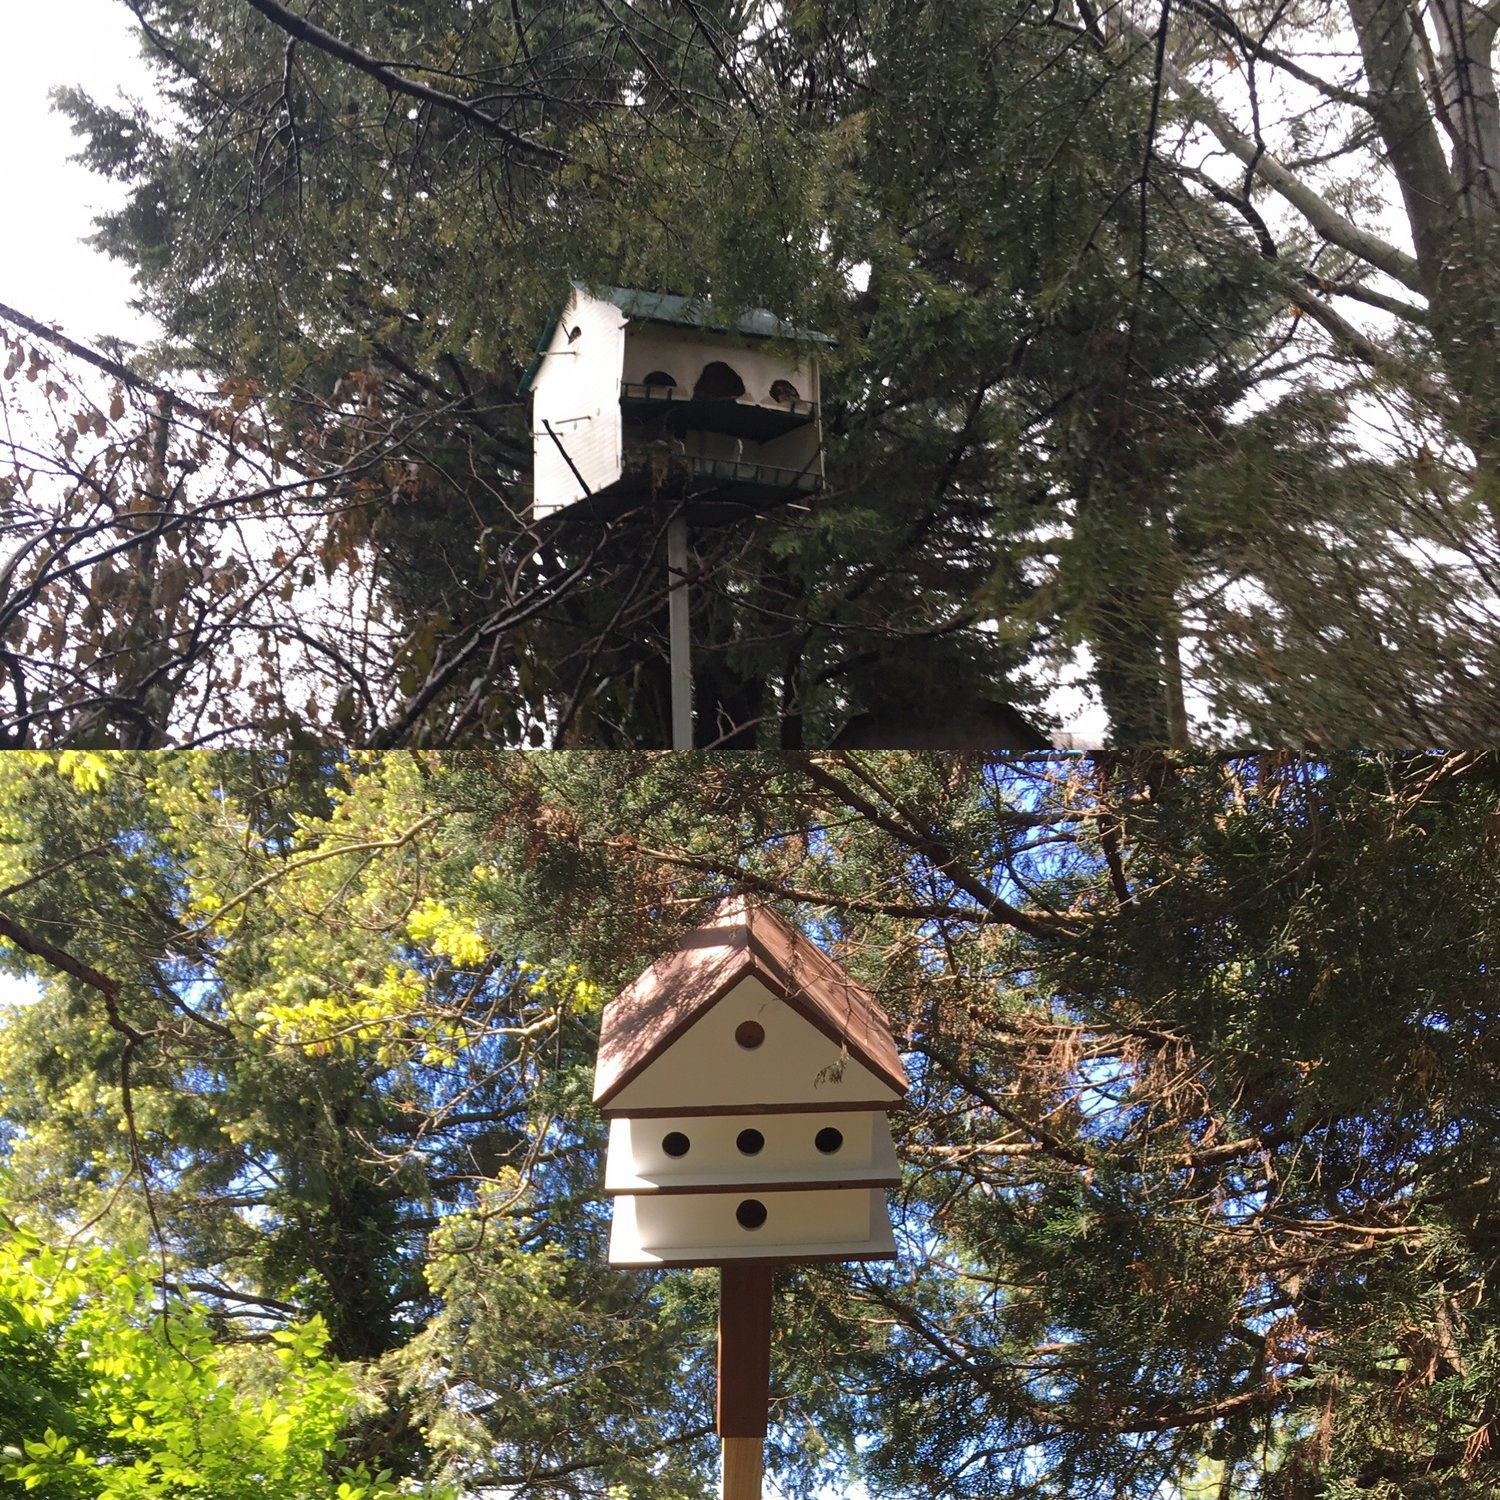 Some of the work included replacing old birdhouses.